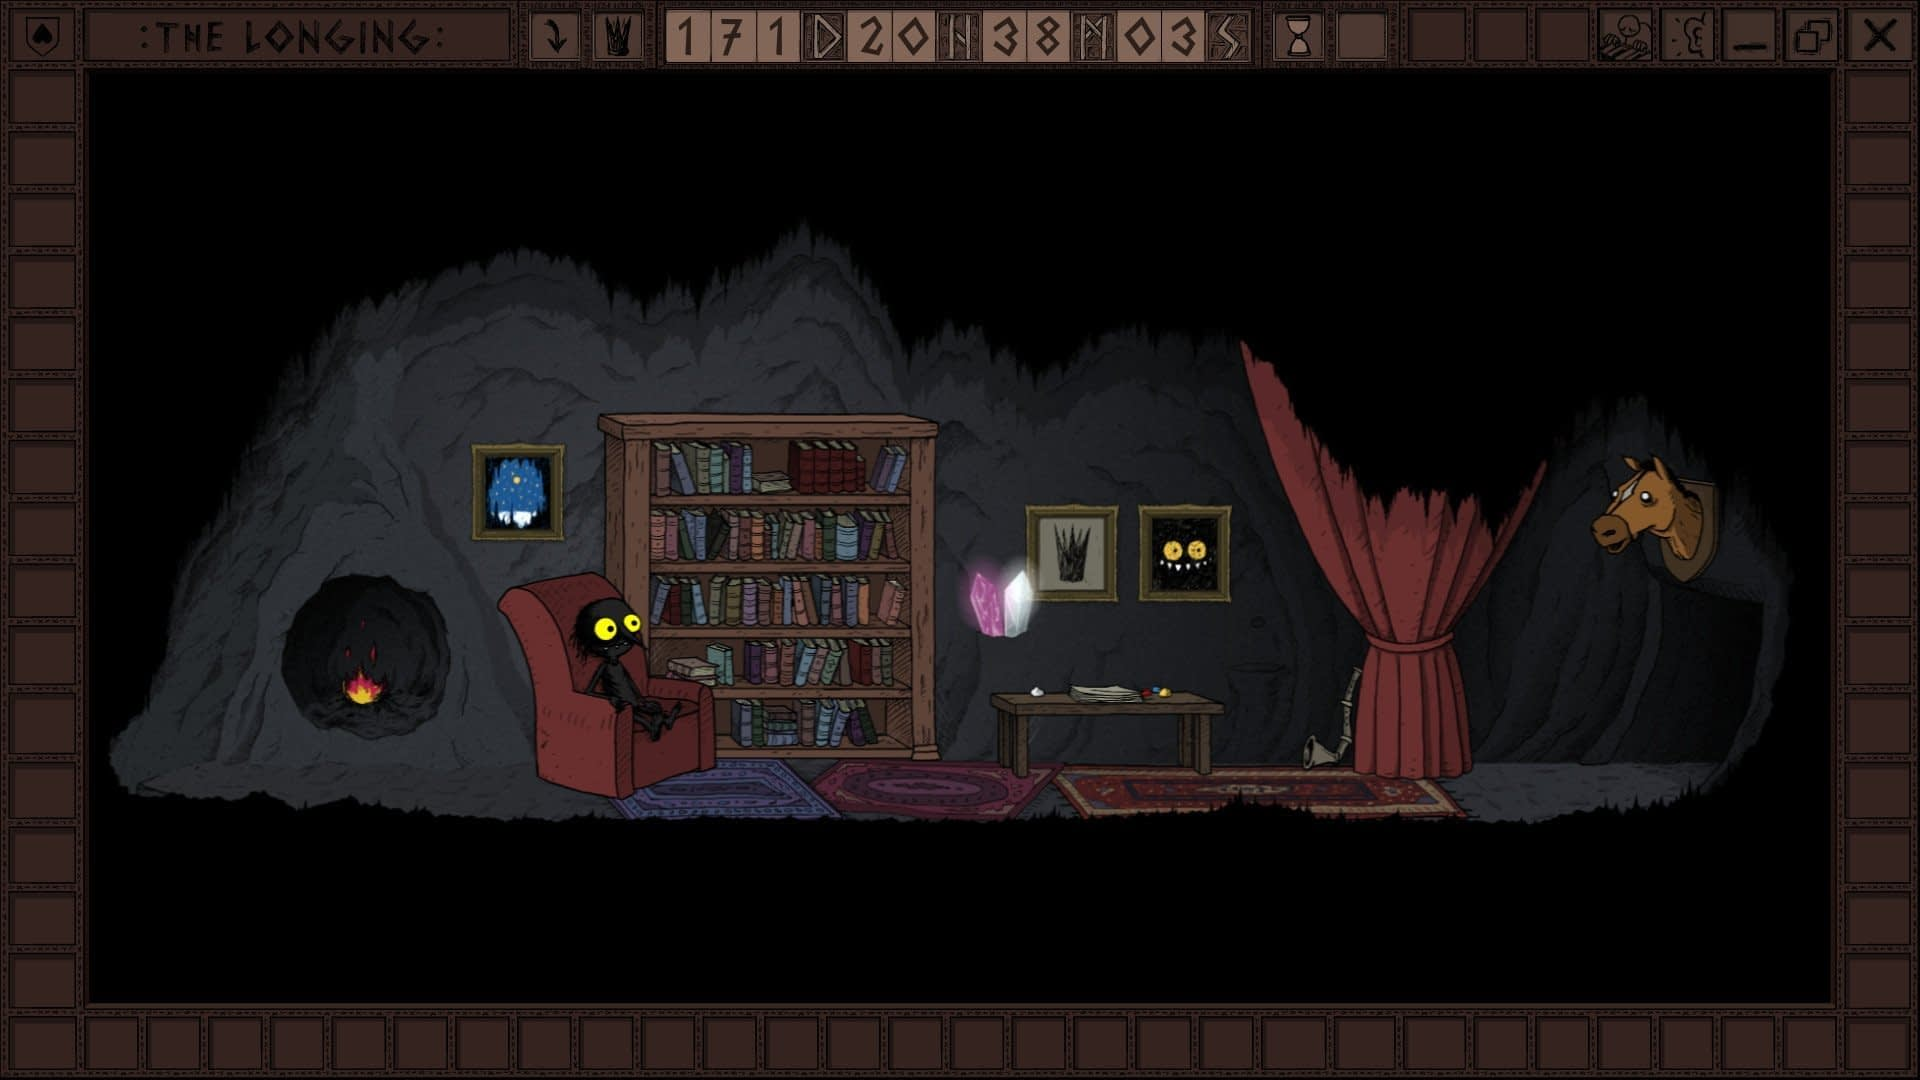 5 New Games On Steam: The Longing